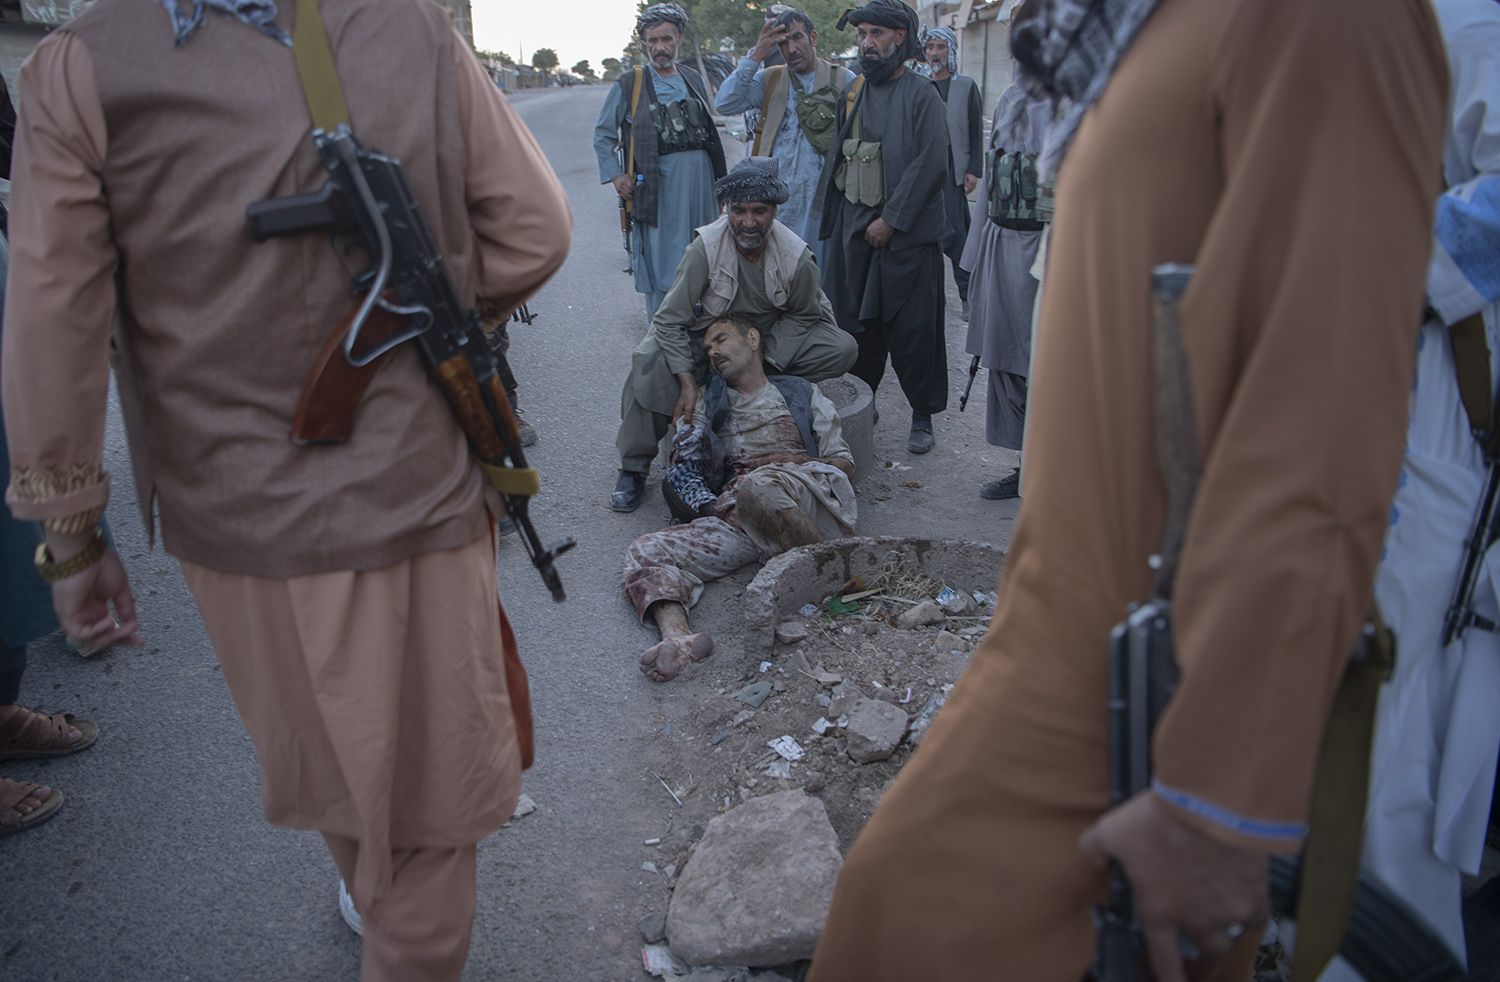 A wounded militiaman from Khan's forces is attended to during a clash with Taliban forces inside Herat city on Aug. 2.